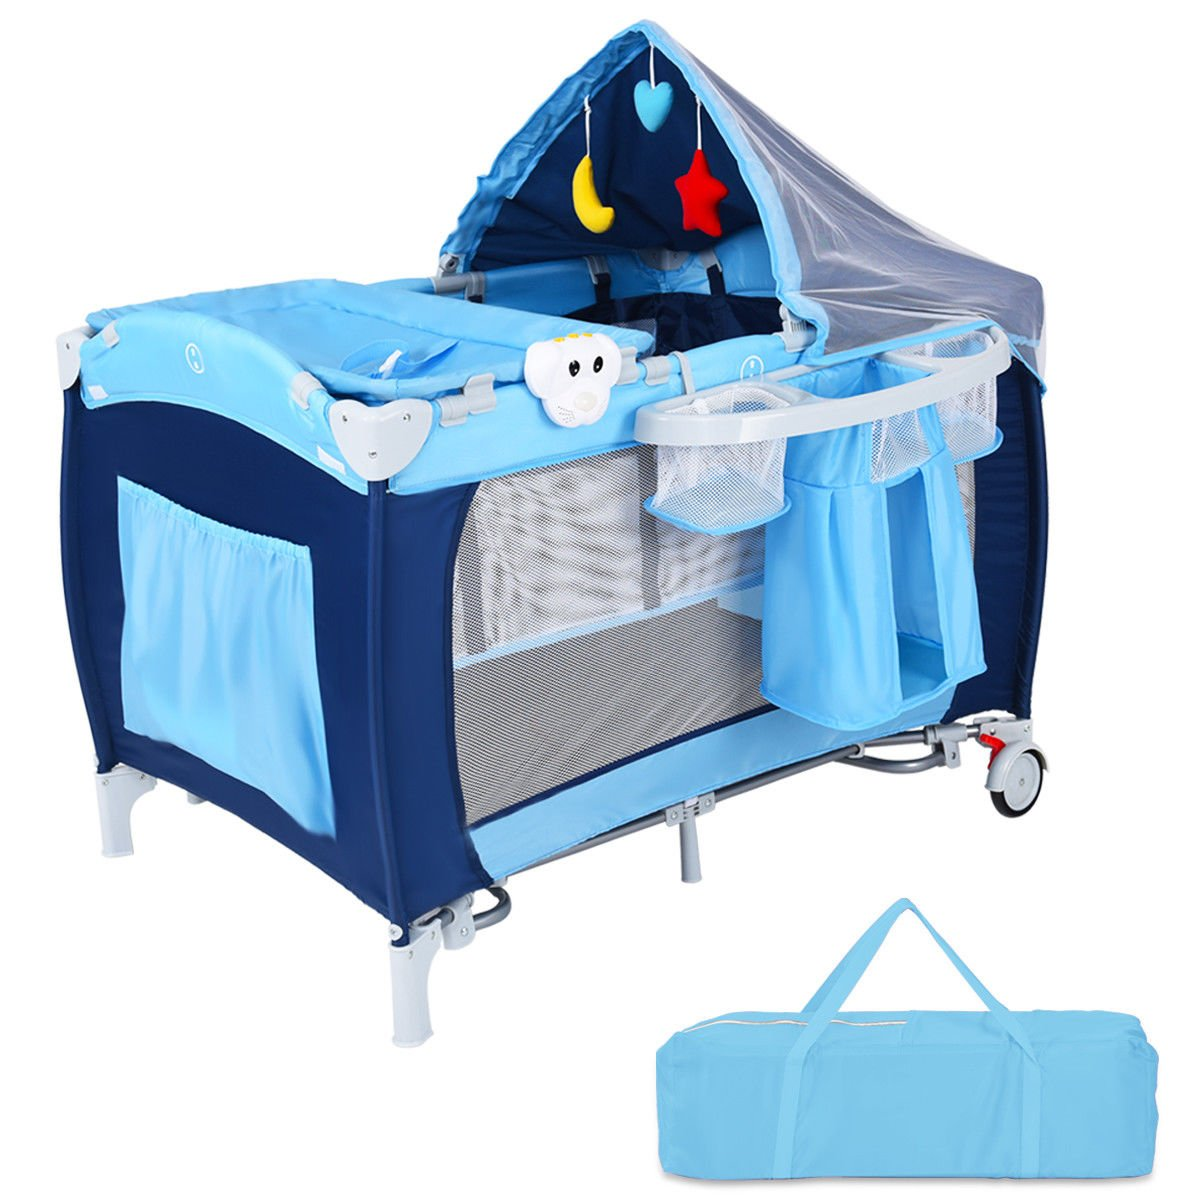 New Foldable Baby Crib Playpen Travel Infant Bassinet Bed Mosquito Net Music w Bag by Costway (Image #5)